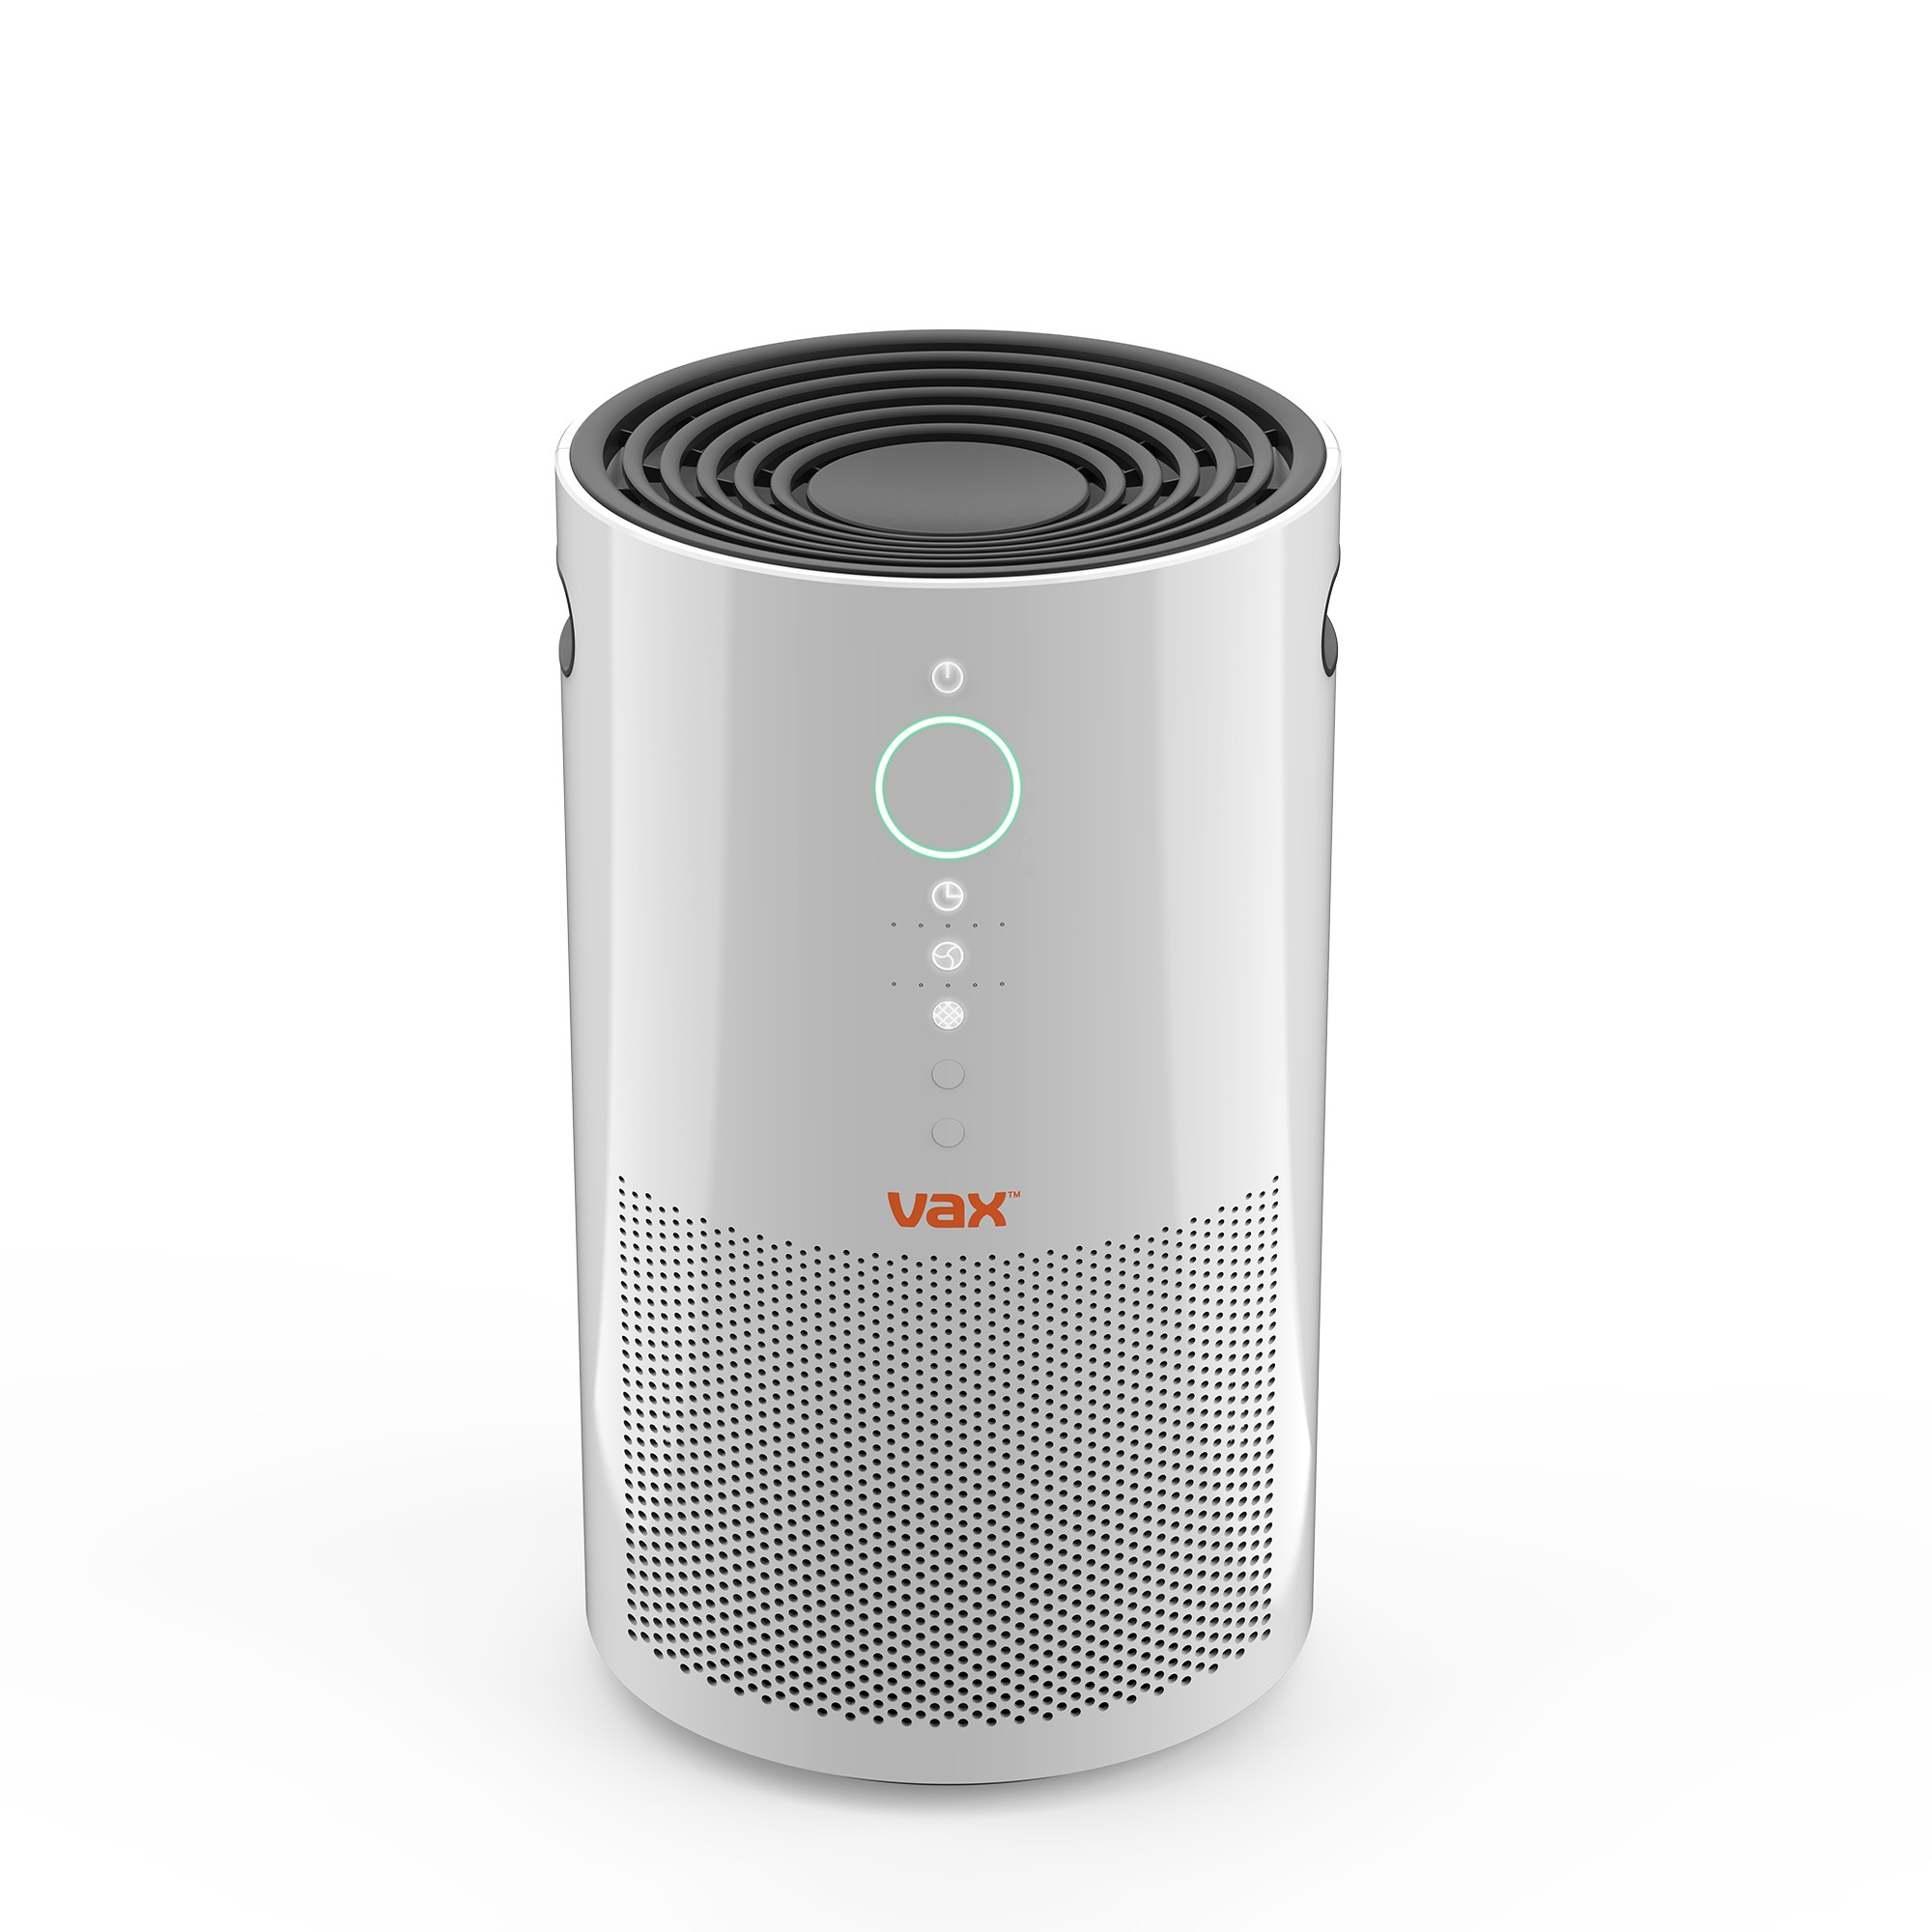 vax pure air 200 air purifier vax official website. Black Bedroom Furniture Sets. Home Design Ideas